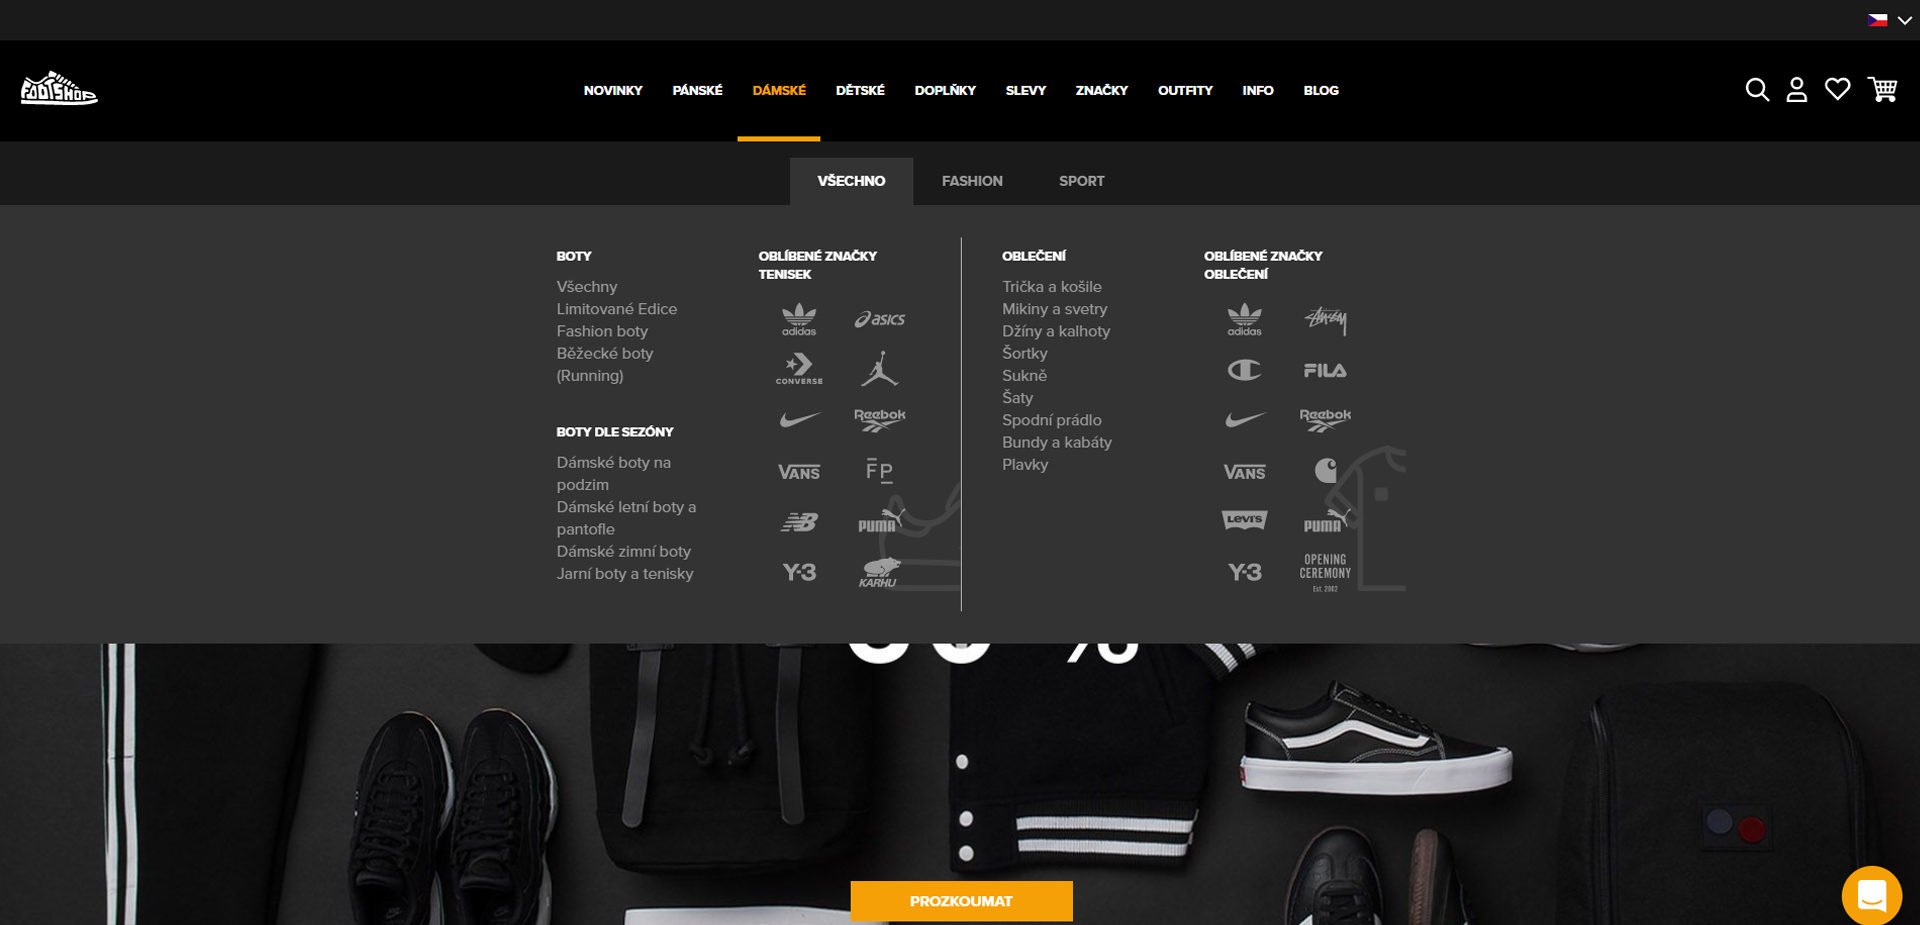 ecommerce website product menu after redesign